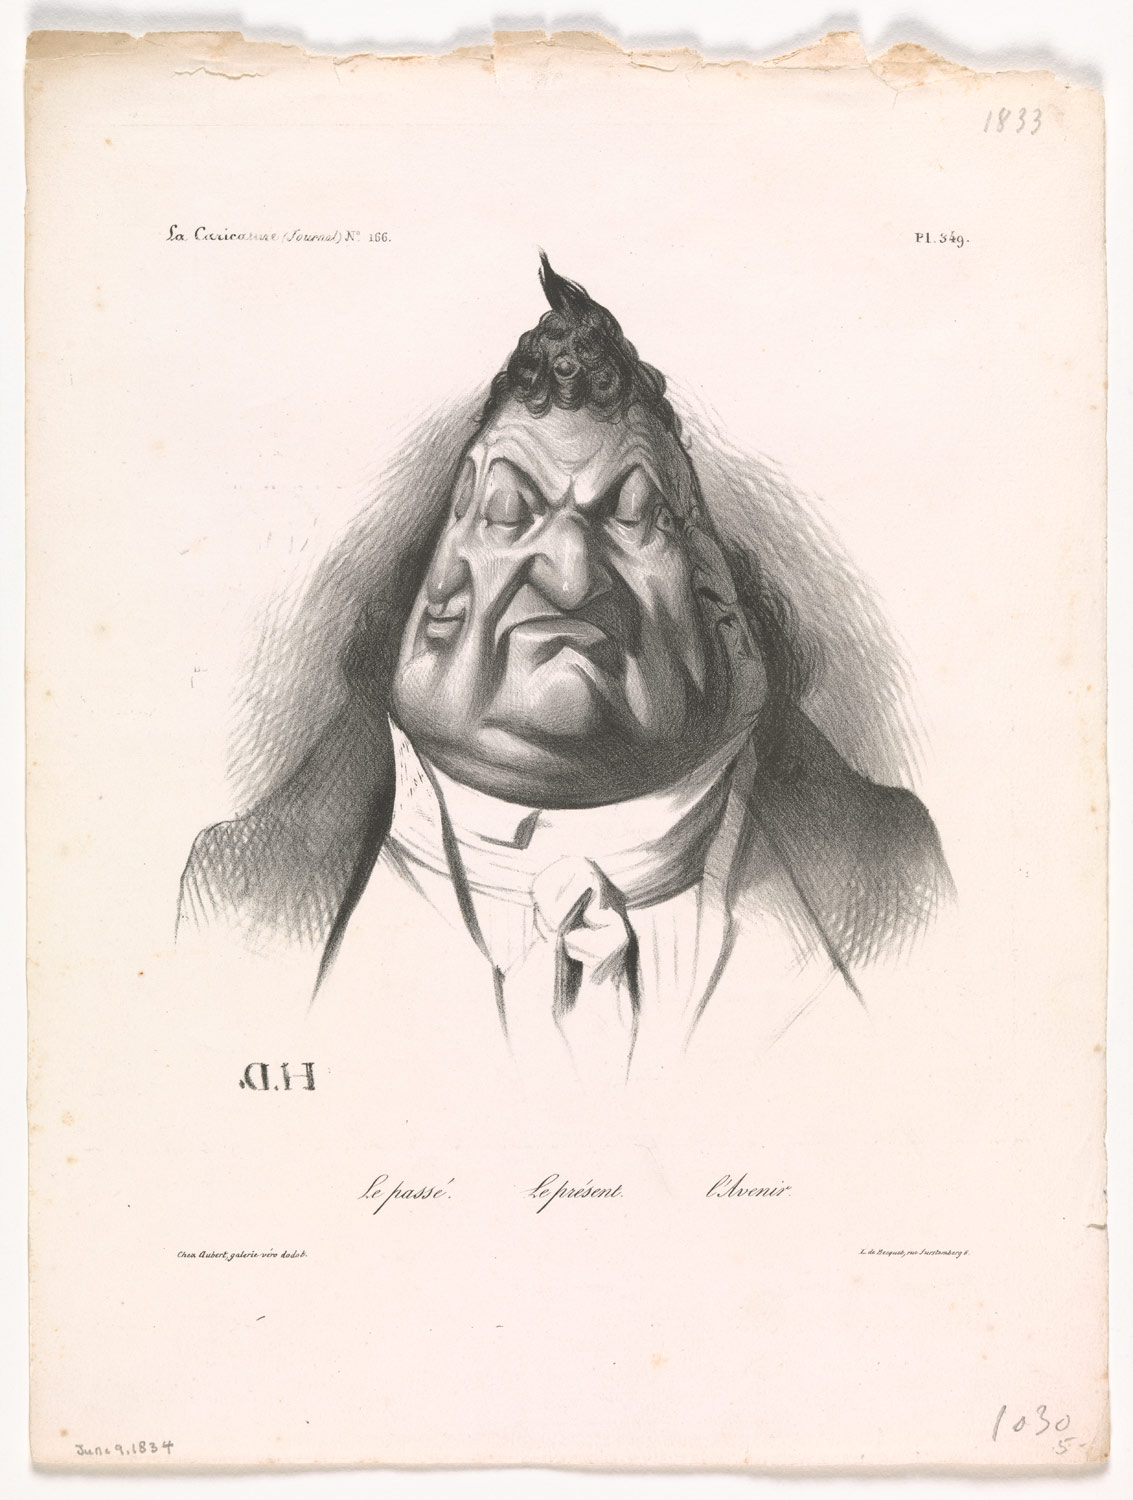 The Past, the Present, and the Future (Le passé – Le présent – LAvenir), published in La Caricature, no. 166, Jan. 9, 1834